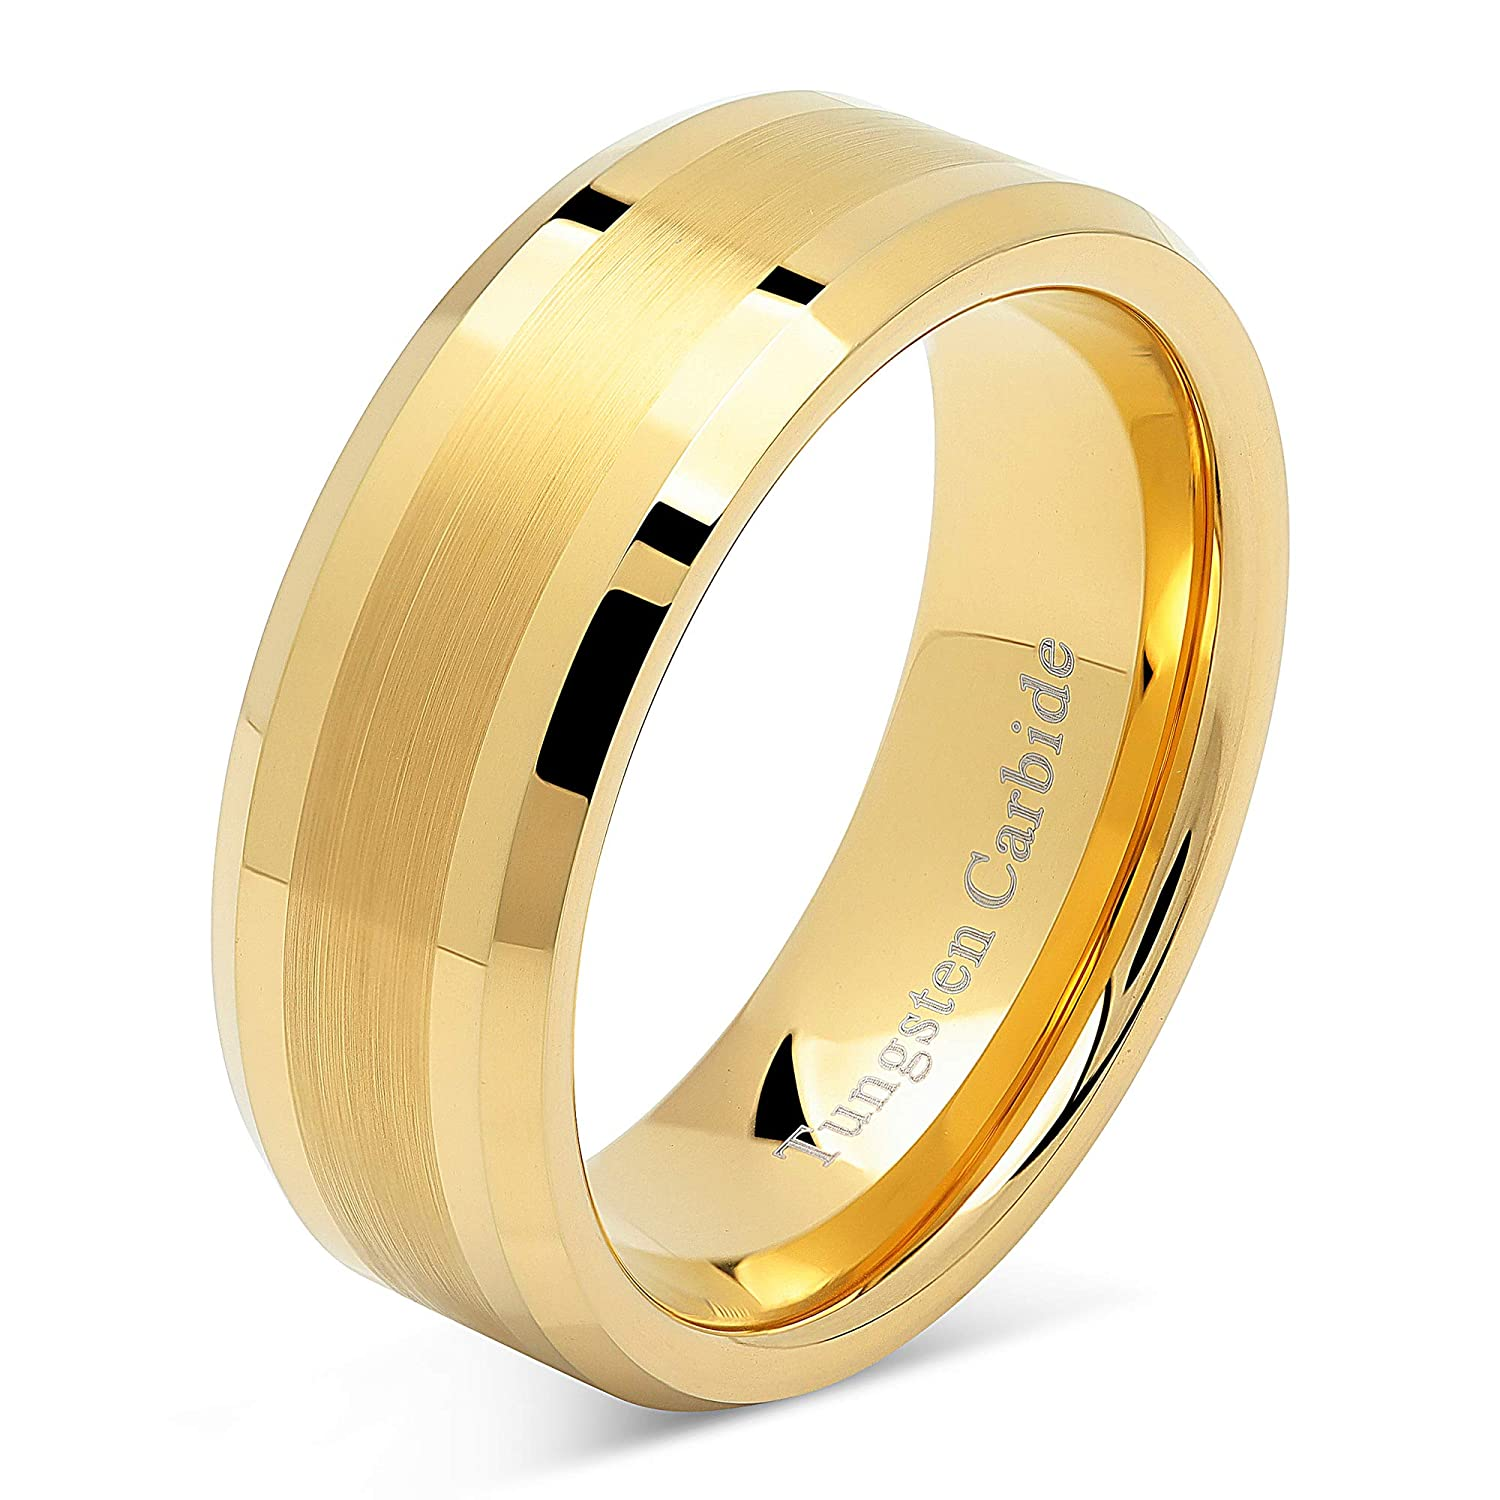 Engagement Wedding Jewelry 8mm Mens Tungsten Ring Wood Inlay 14k